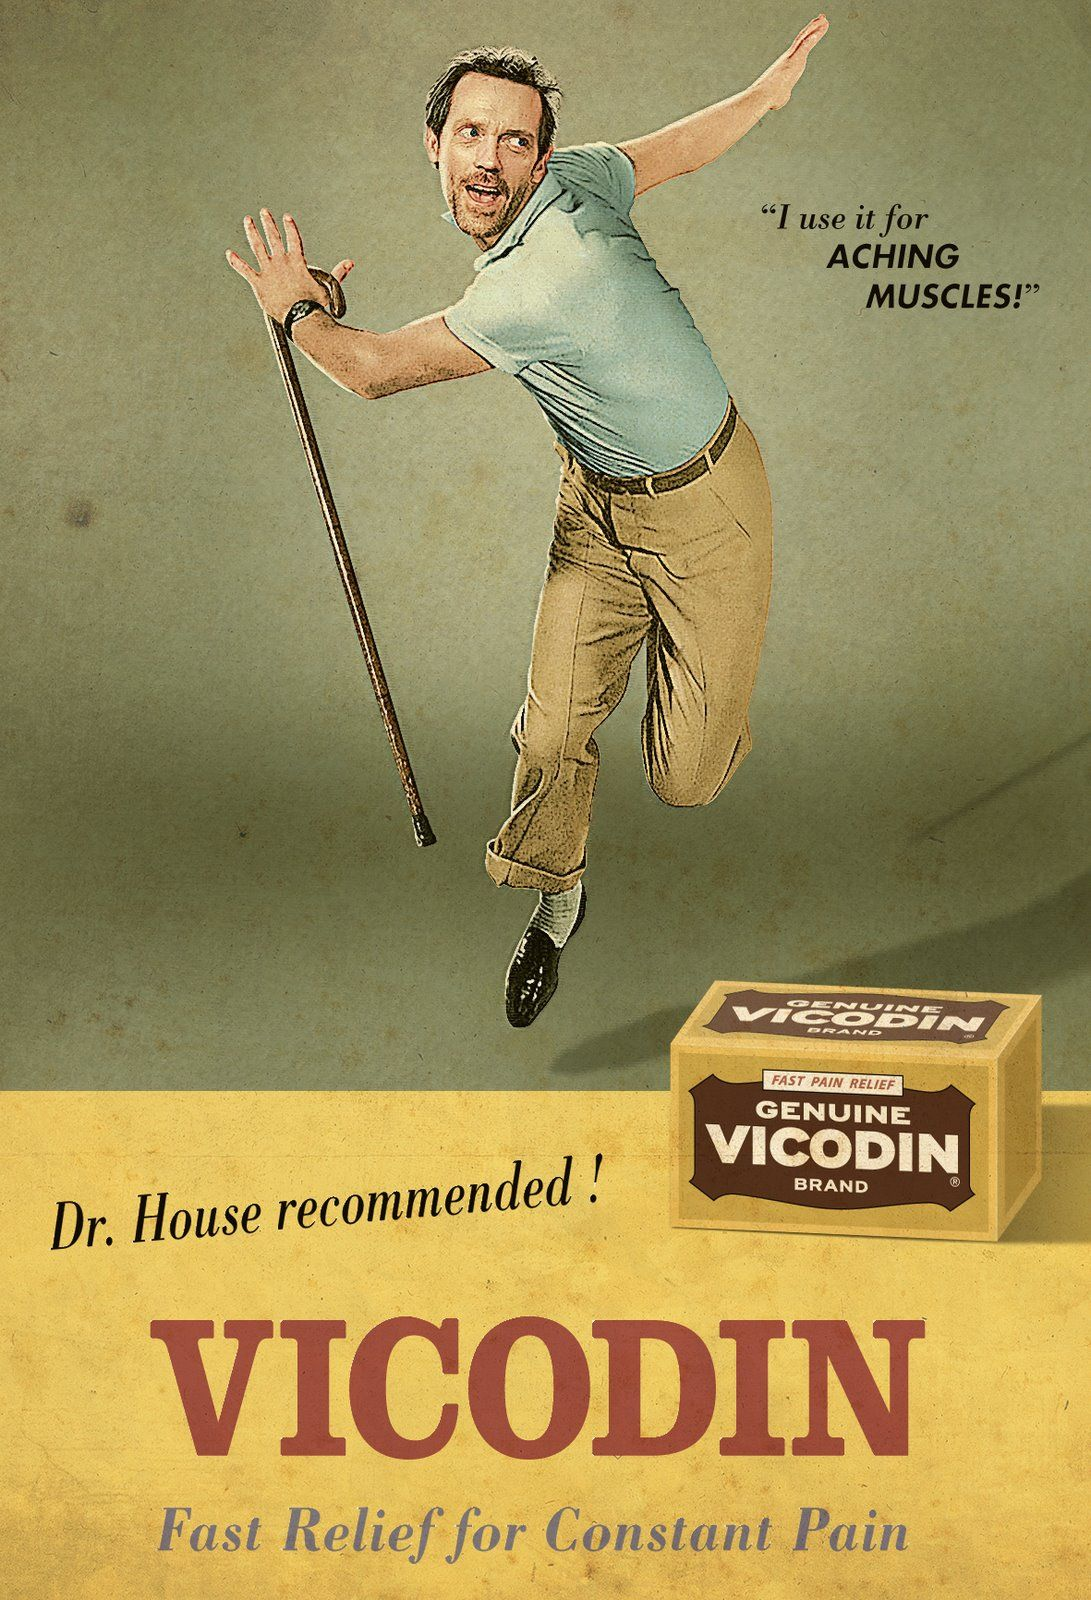 Dr. House Recommended! Vicodin: Fast relief for constant pain!